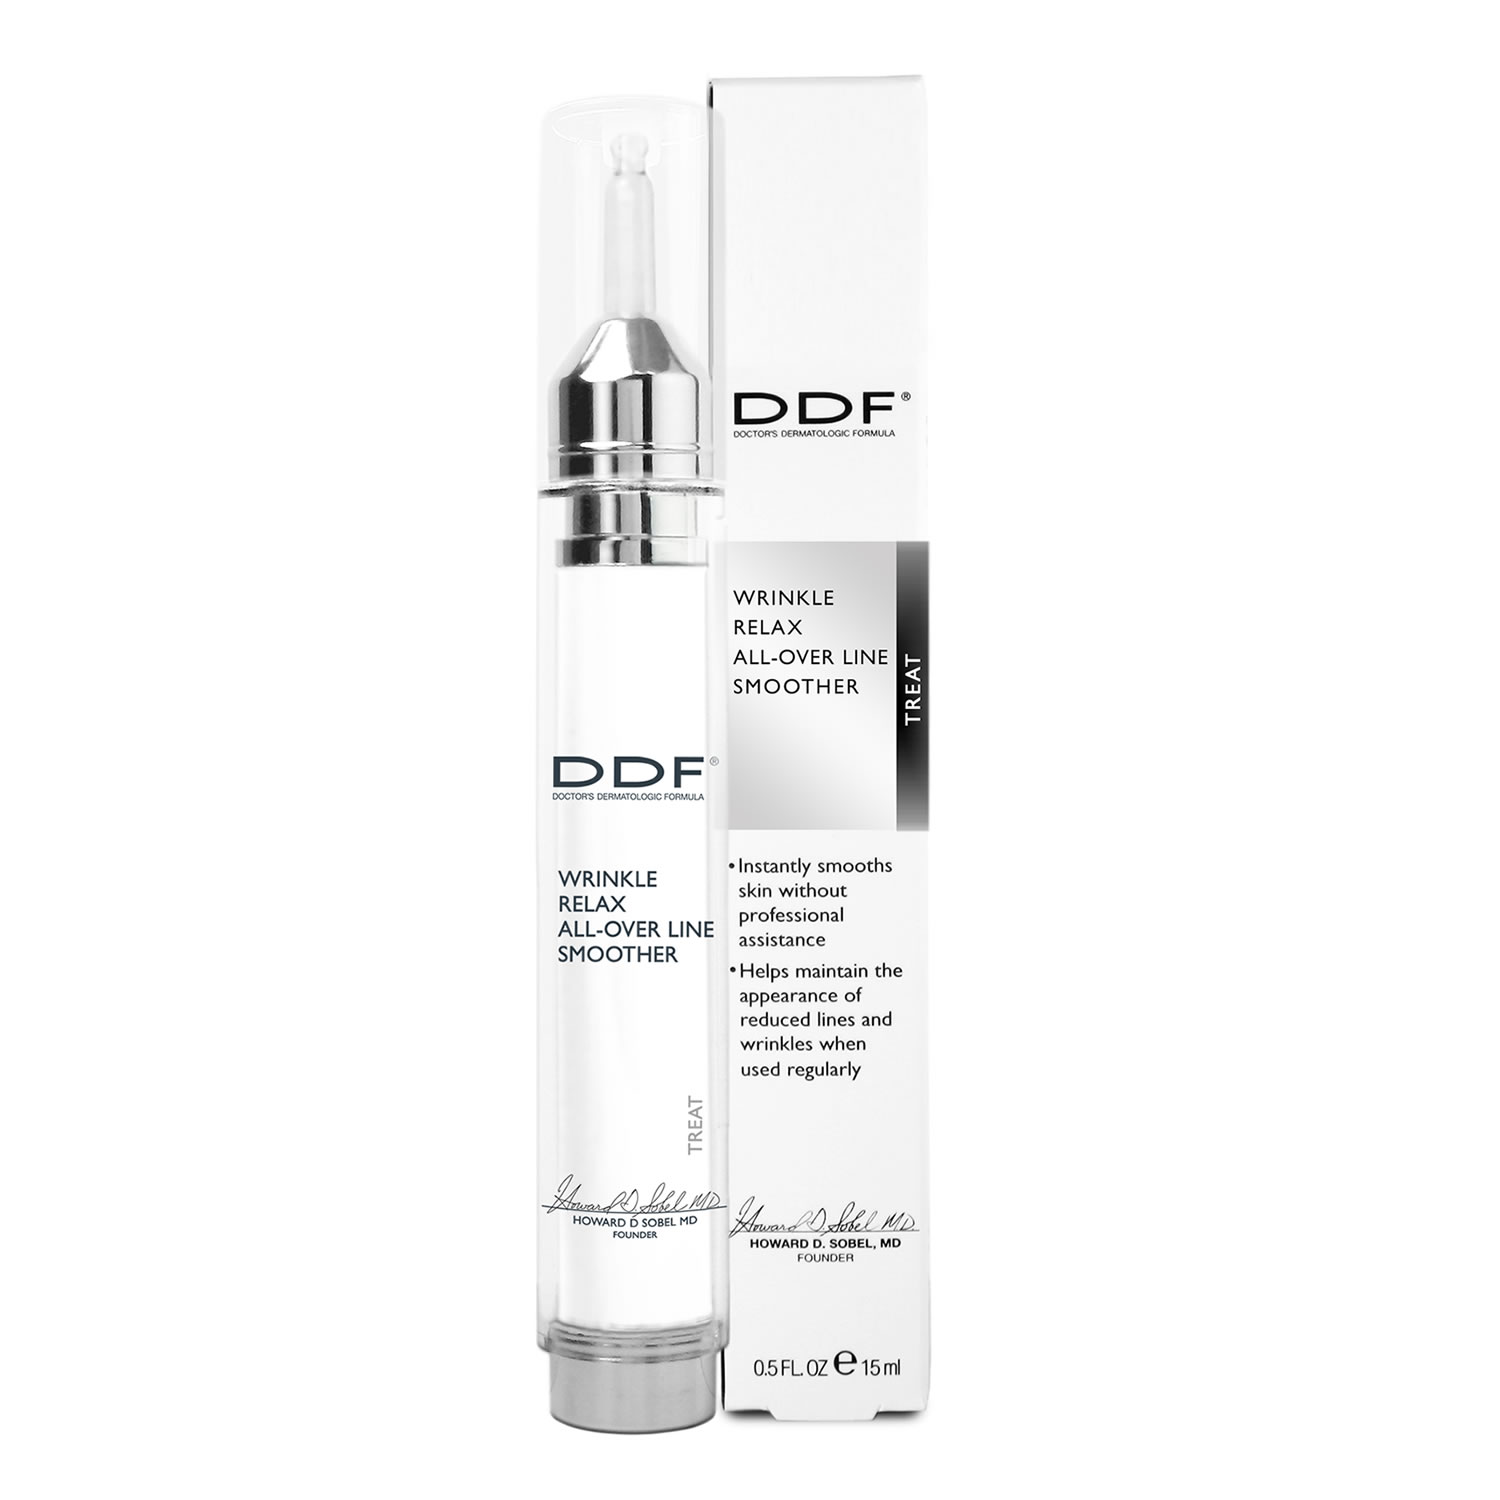 DDF_WRINKLE_RELAX_ALLOVER_LINE_SMOOTHER_05_fl_oz__15_ml